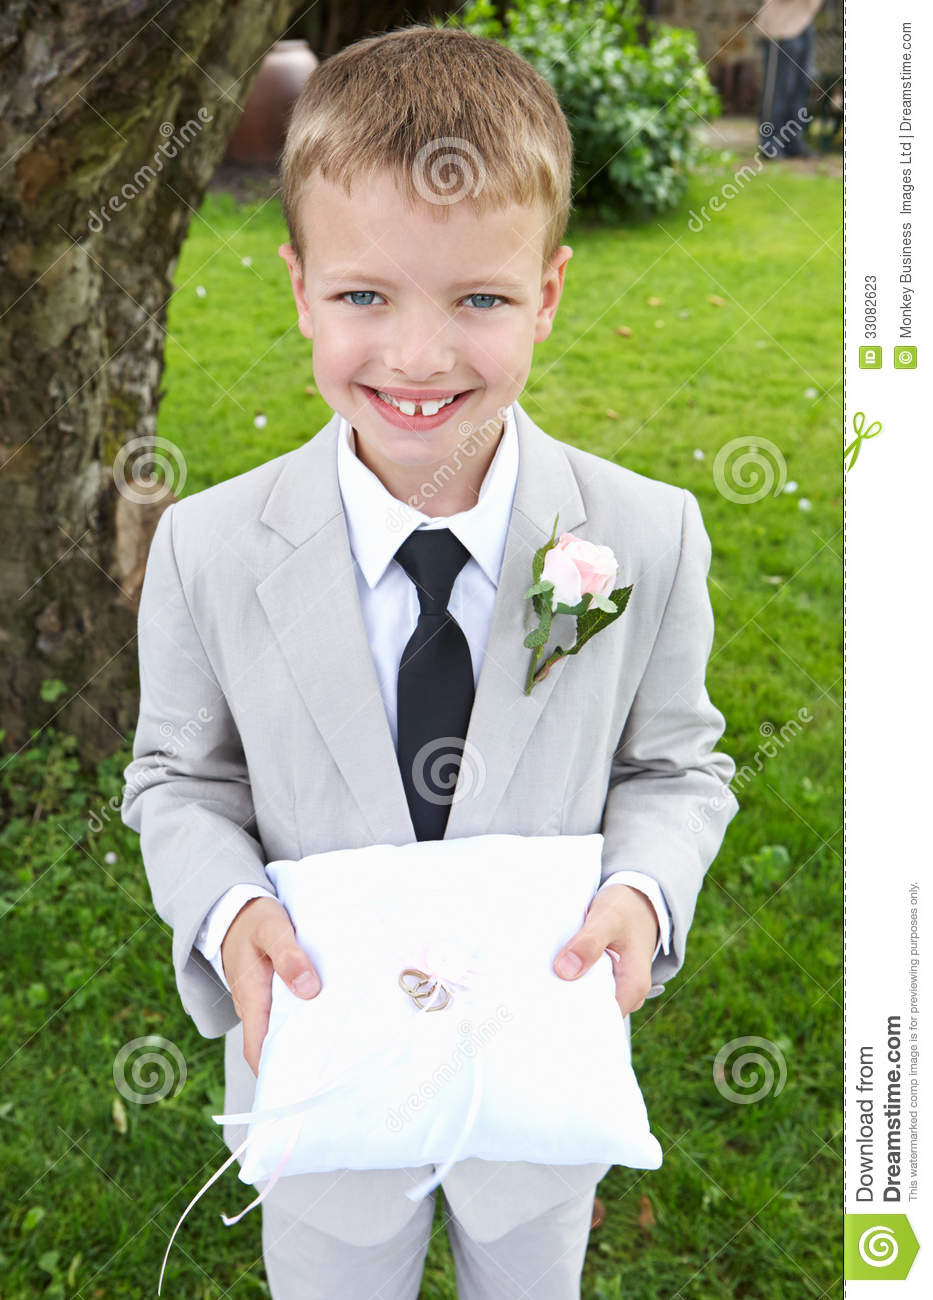 Page Boy Carrying Wedding Ring On Cushion Stock Photos - Image ...